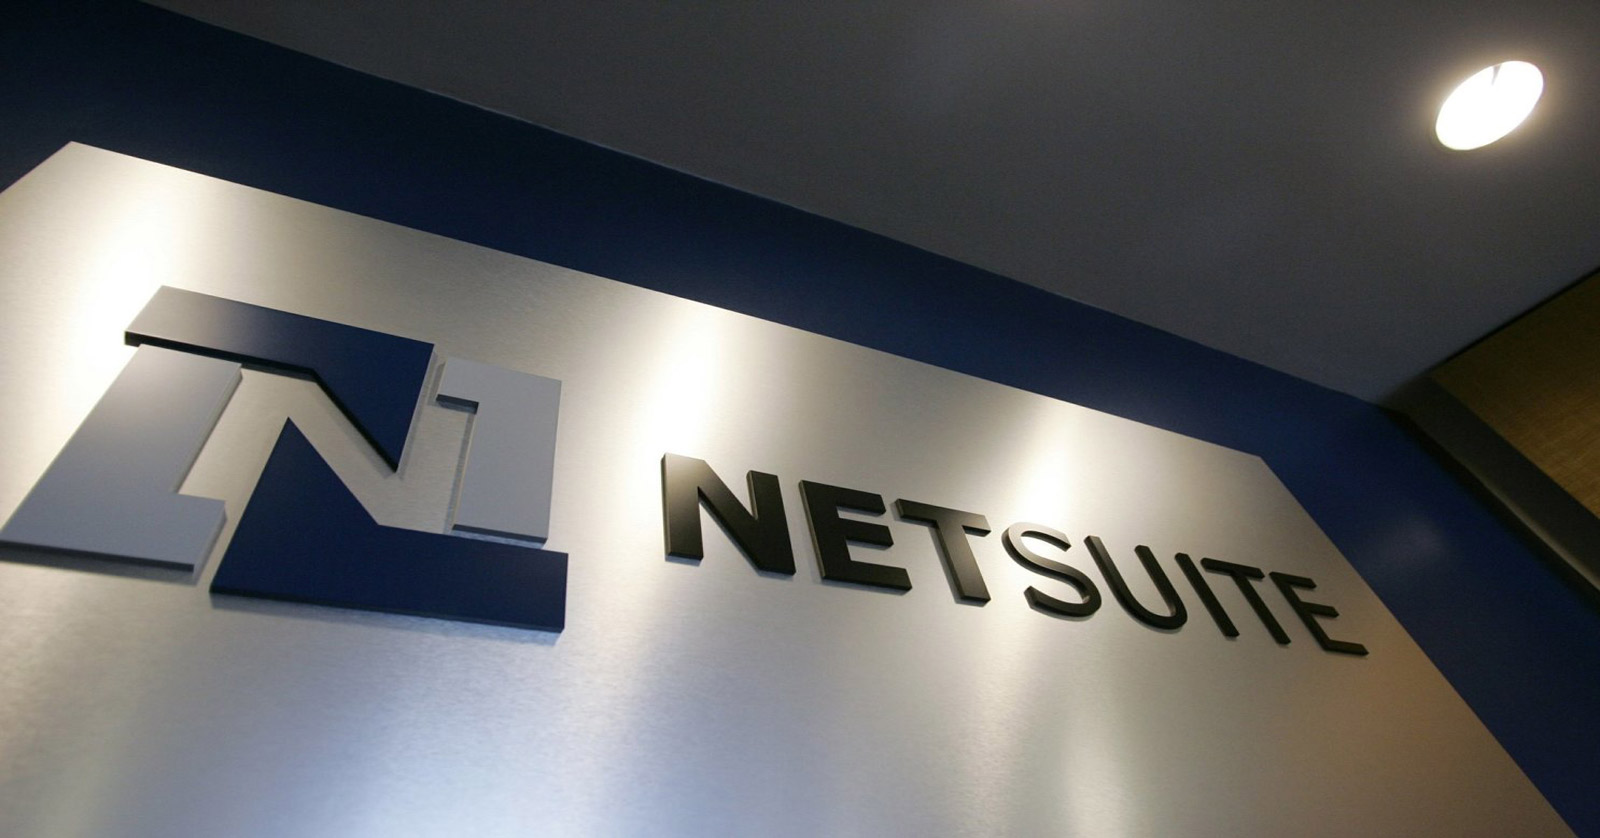 History of NetSuite